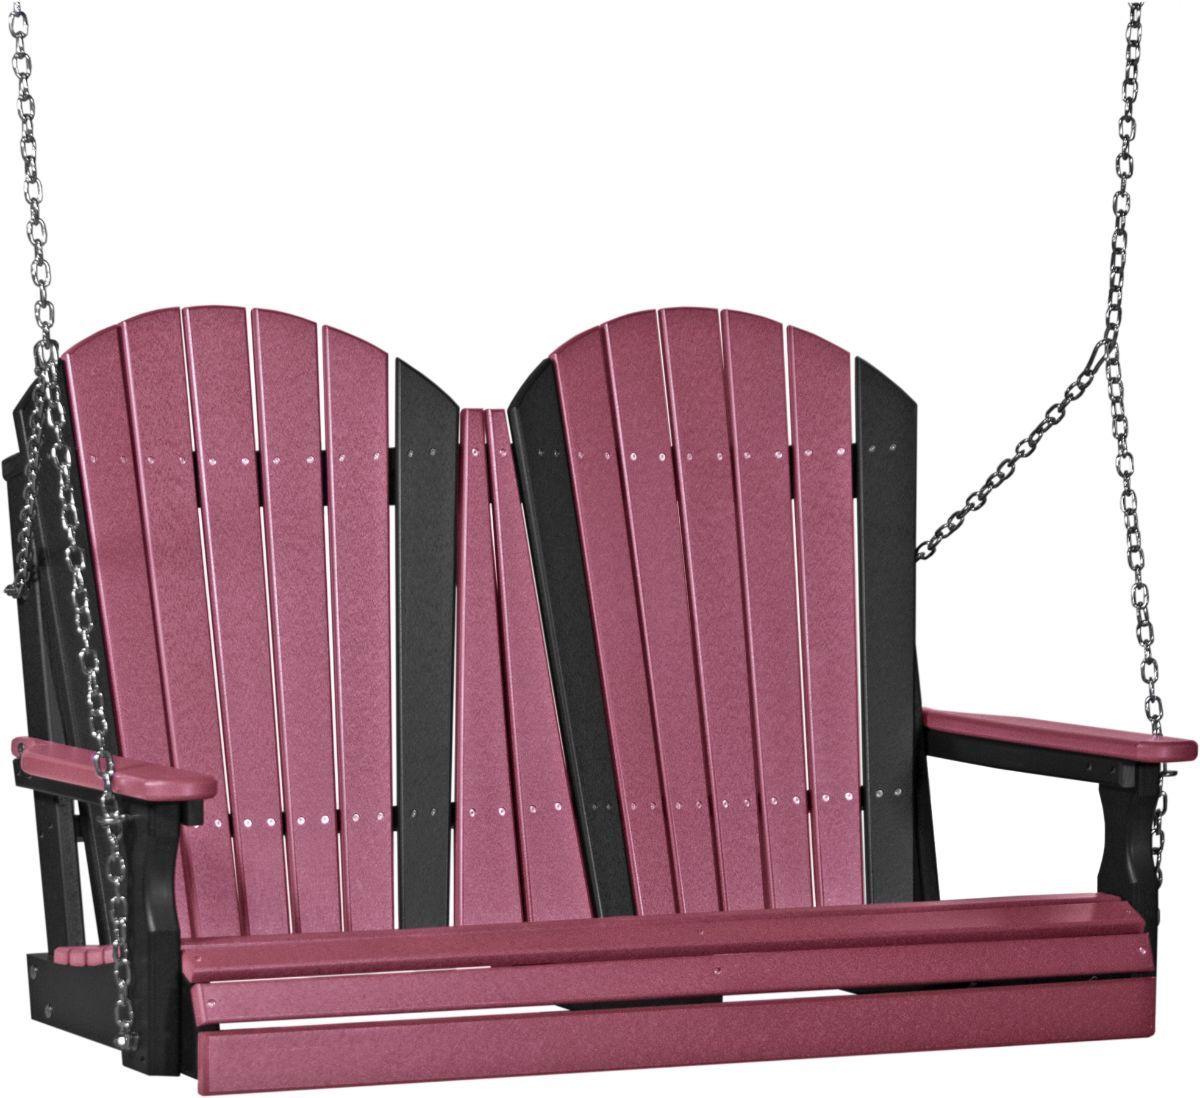 Cherrywood and Black Tahiti Adirondack Porch Swing